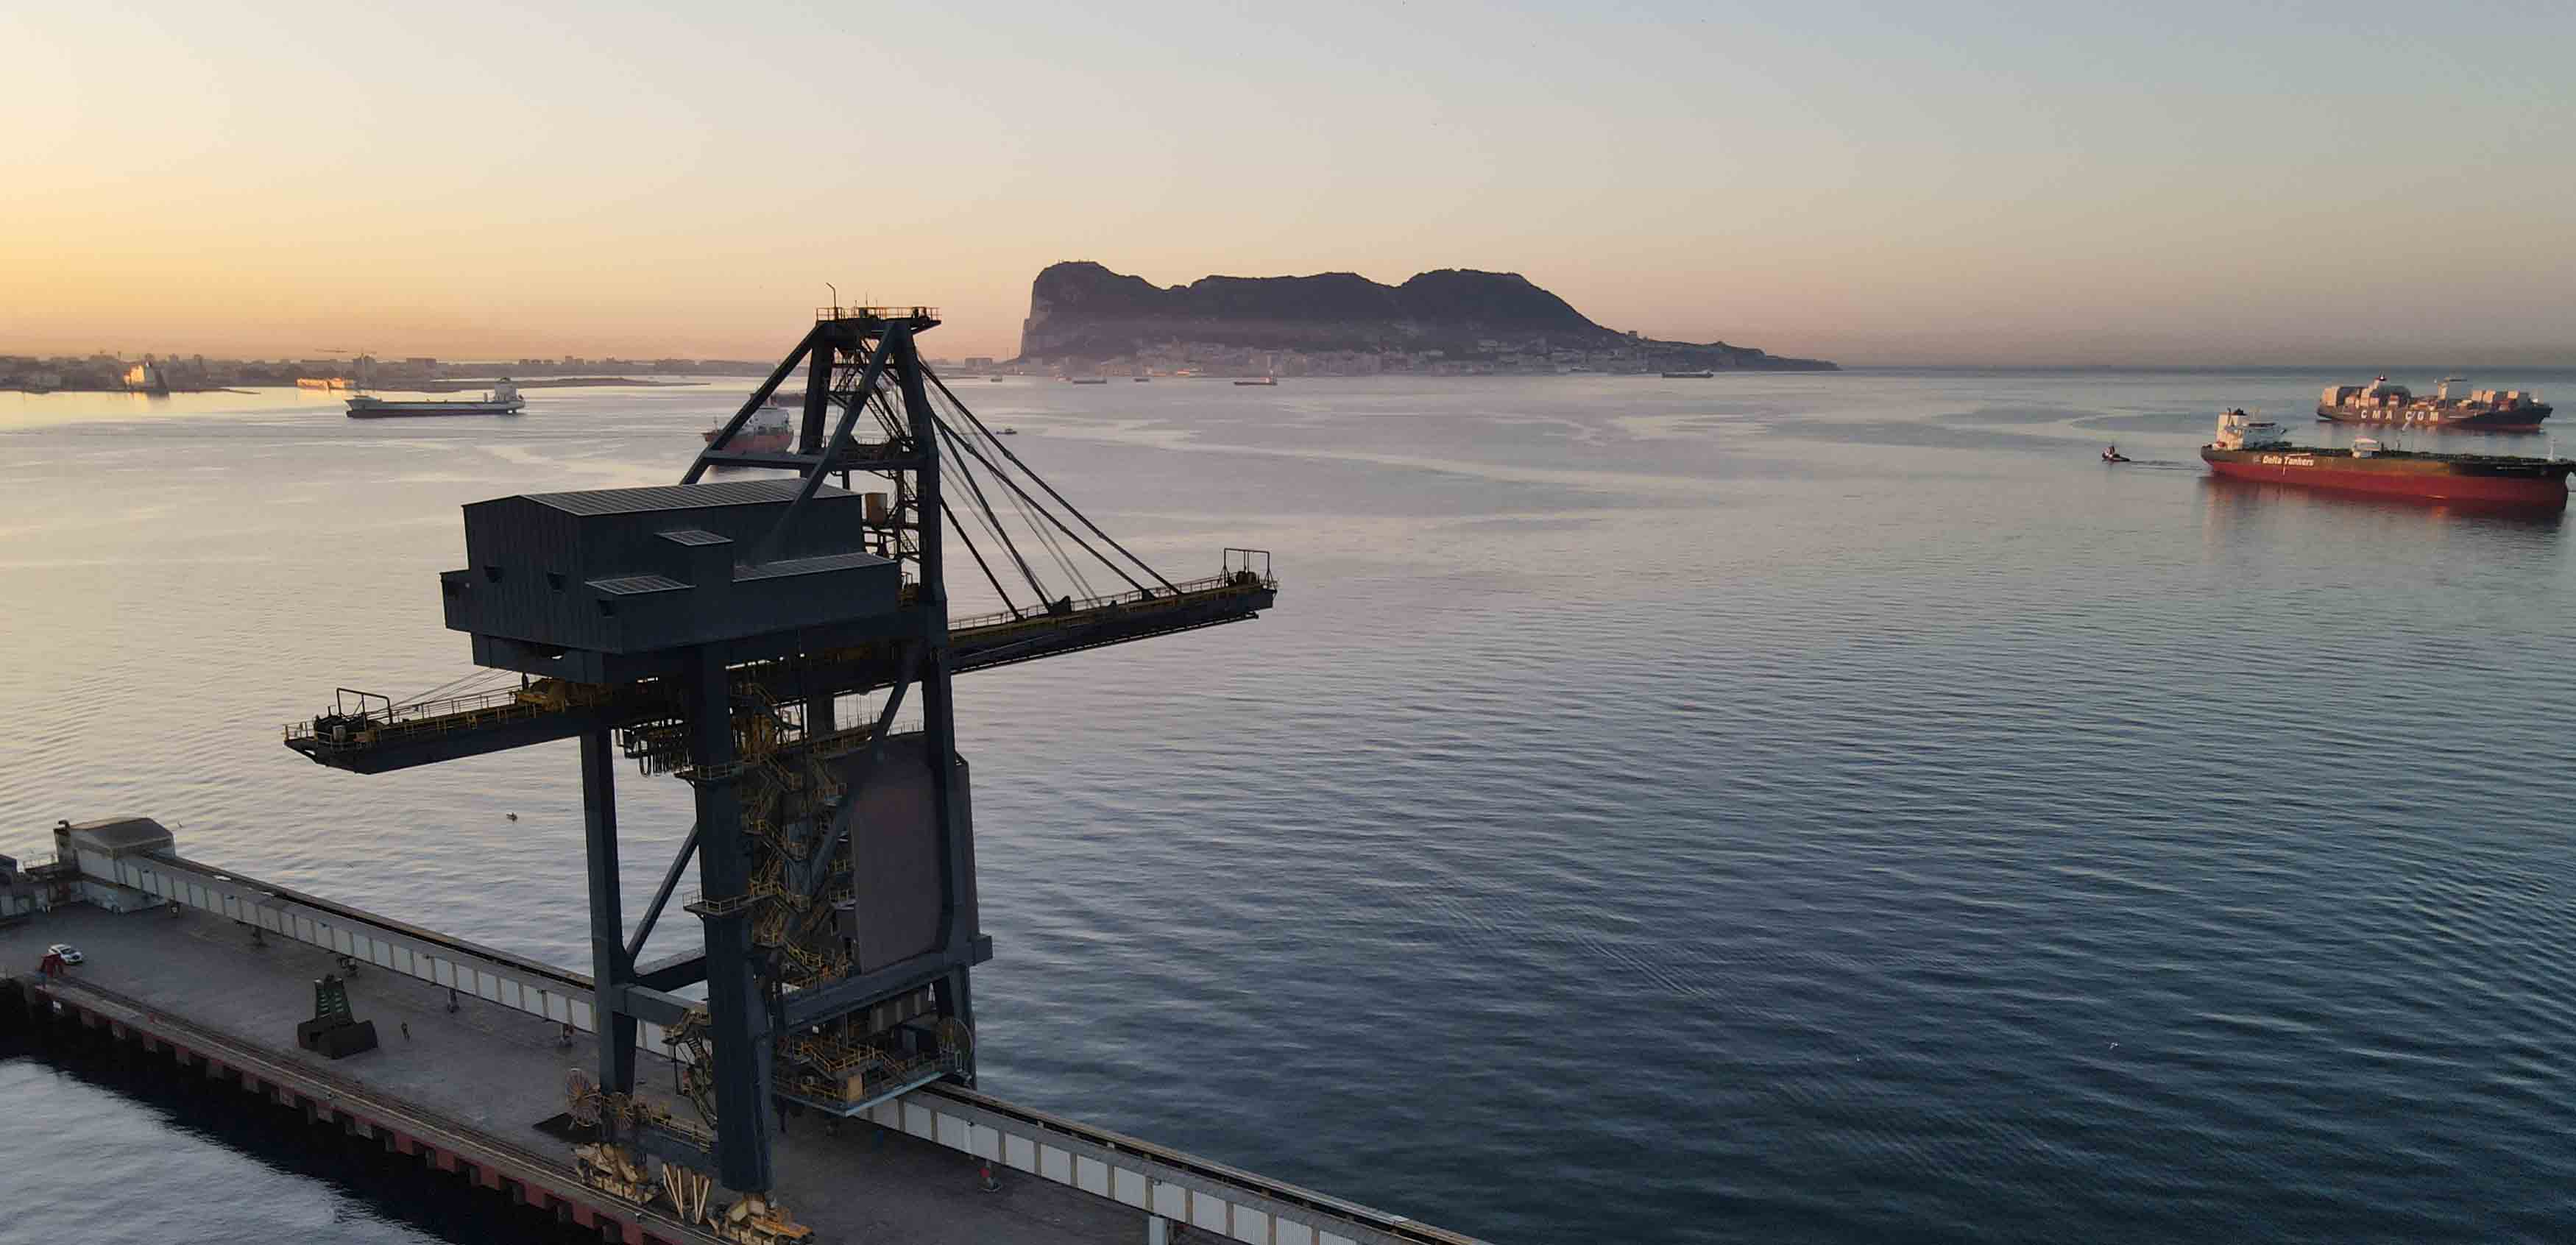 Endesa lines up €34.5 mln LNG bunkering investment